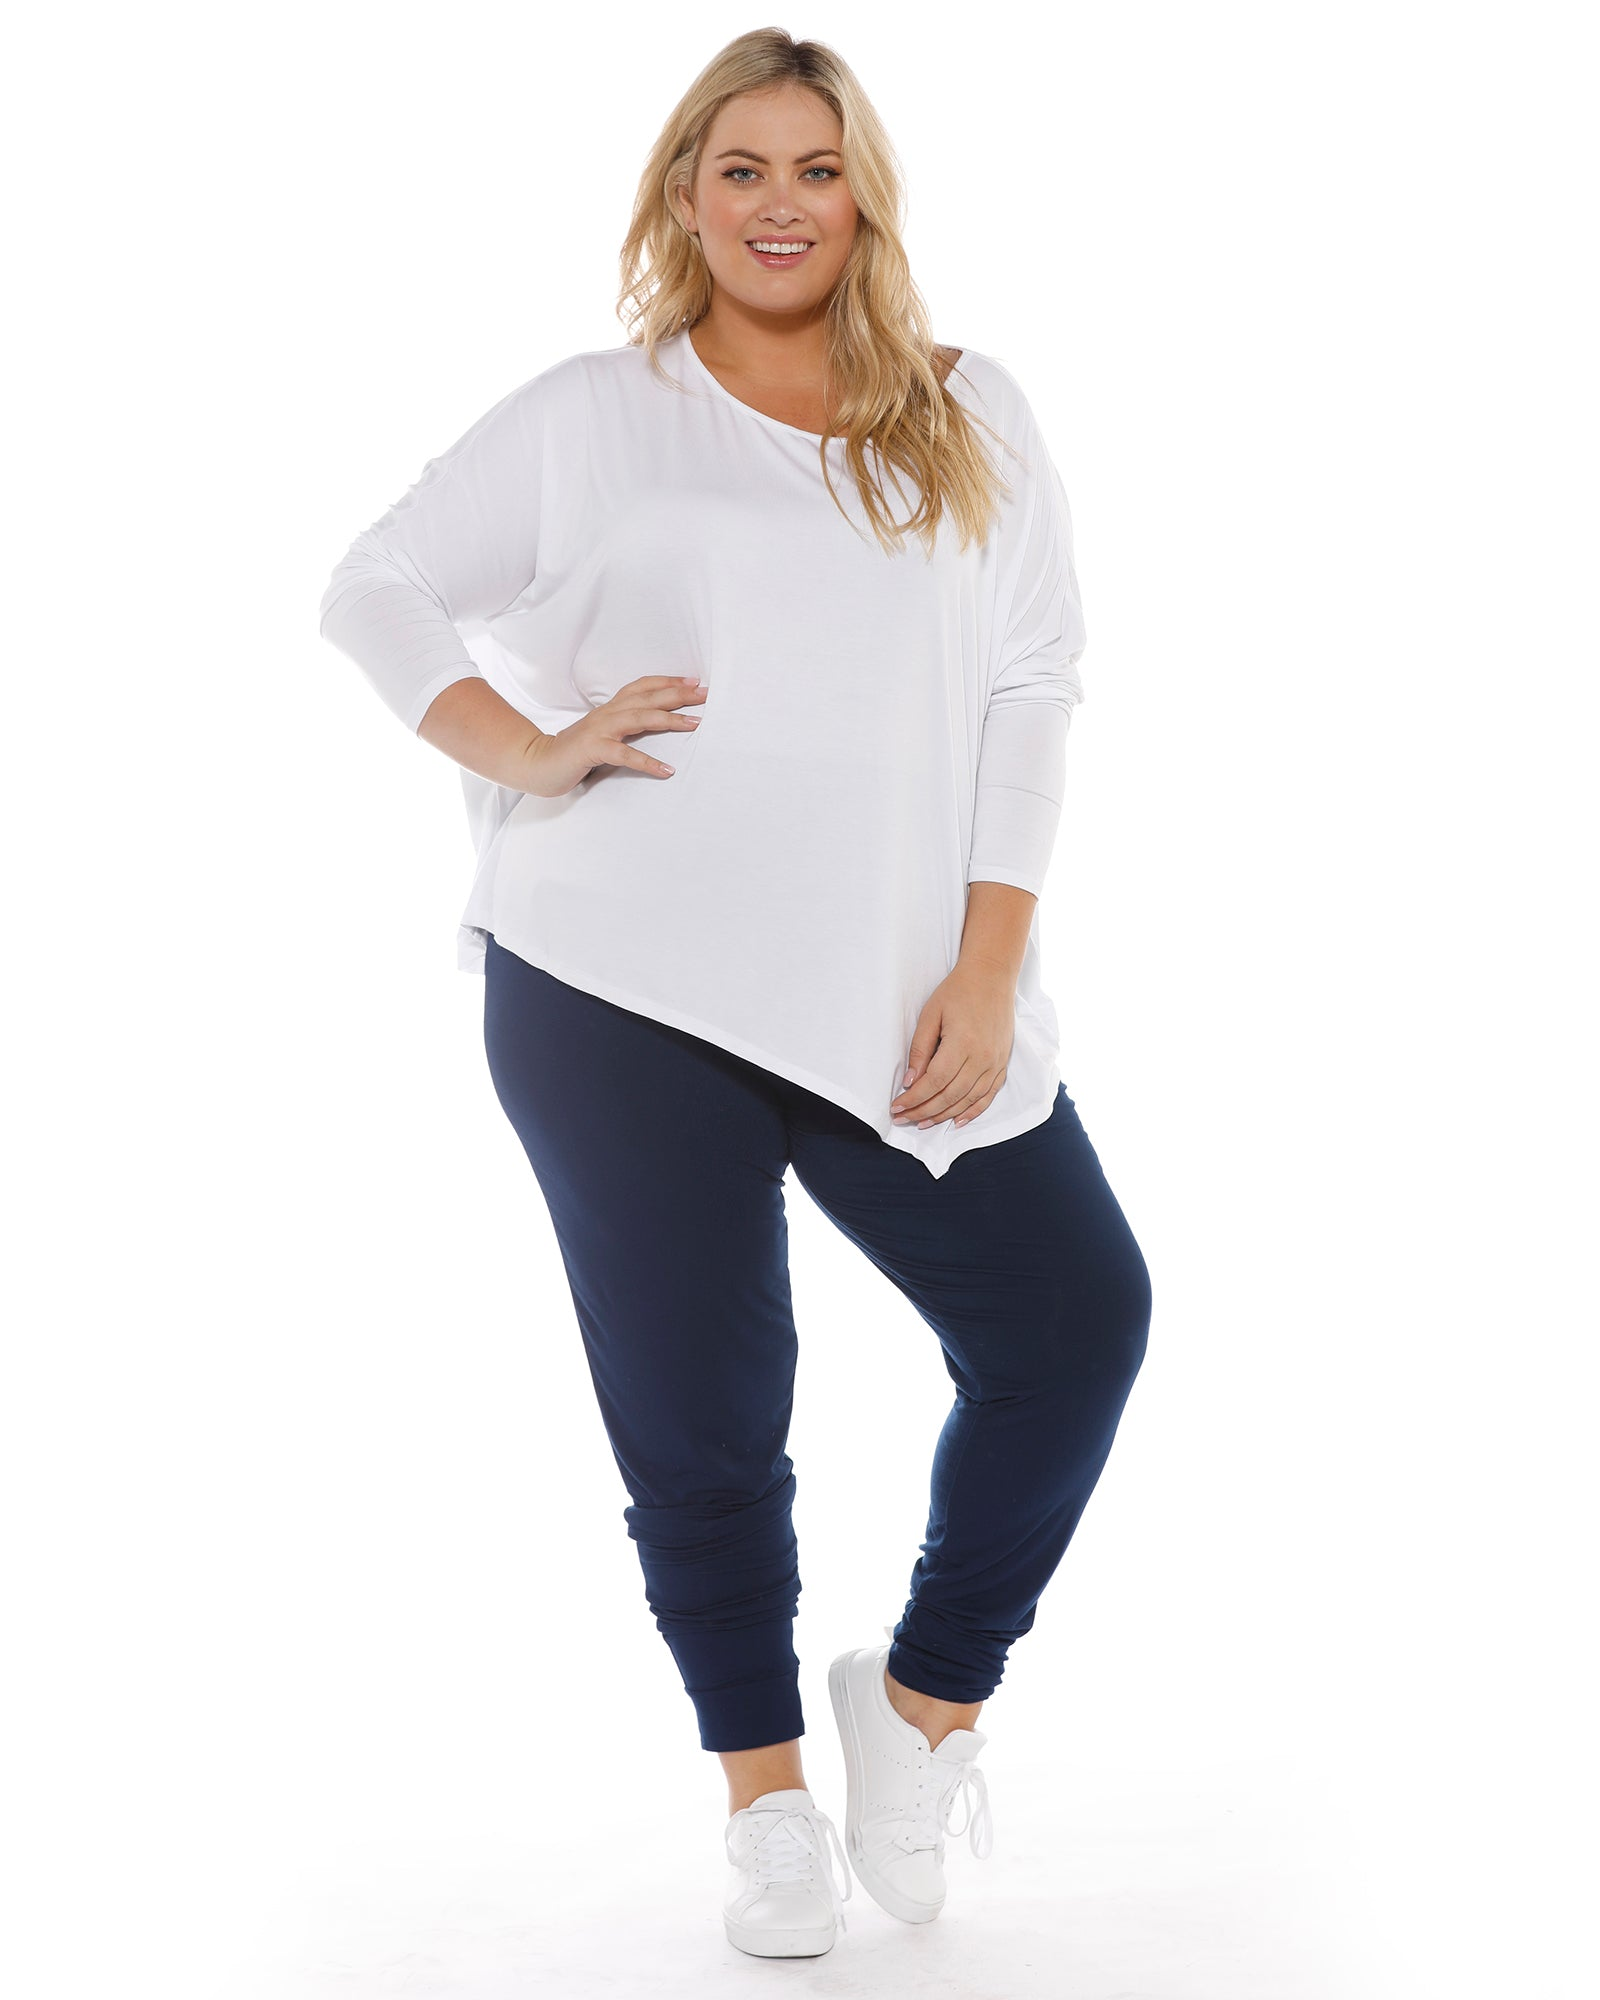 Relaxed Boat Neck Top - White- Size 8-14